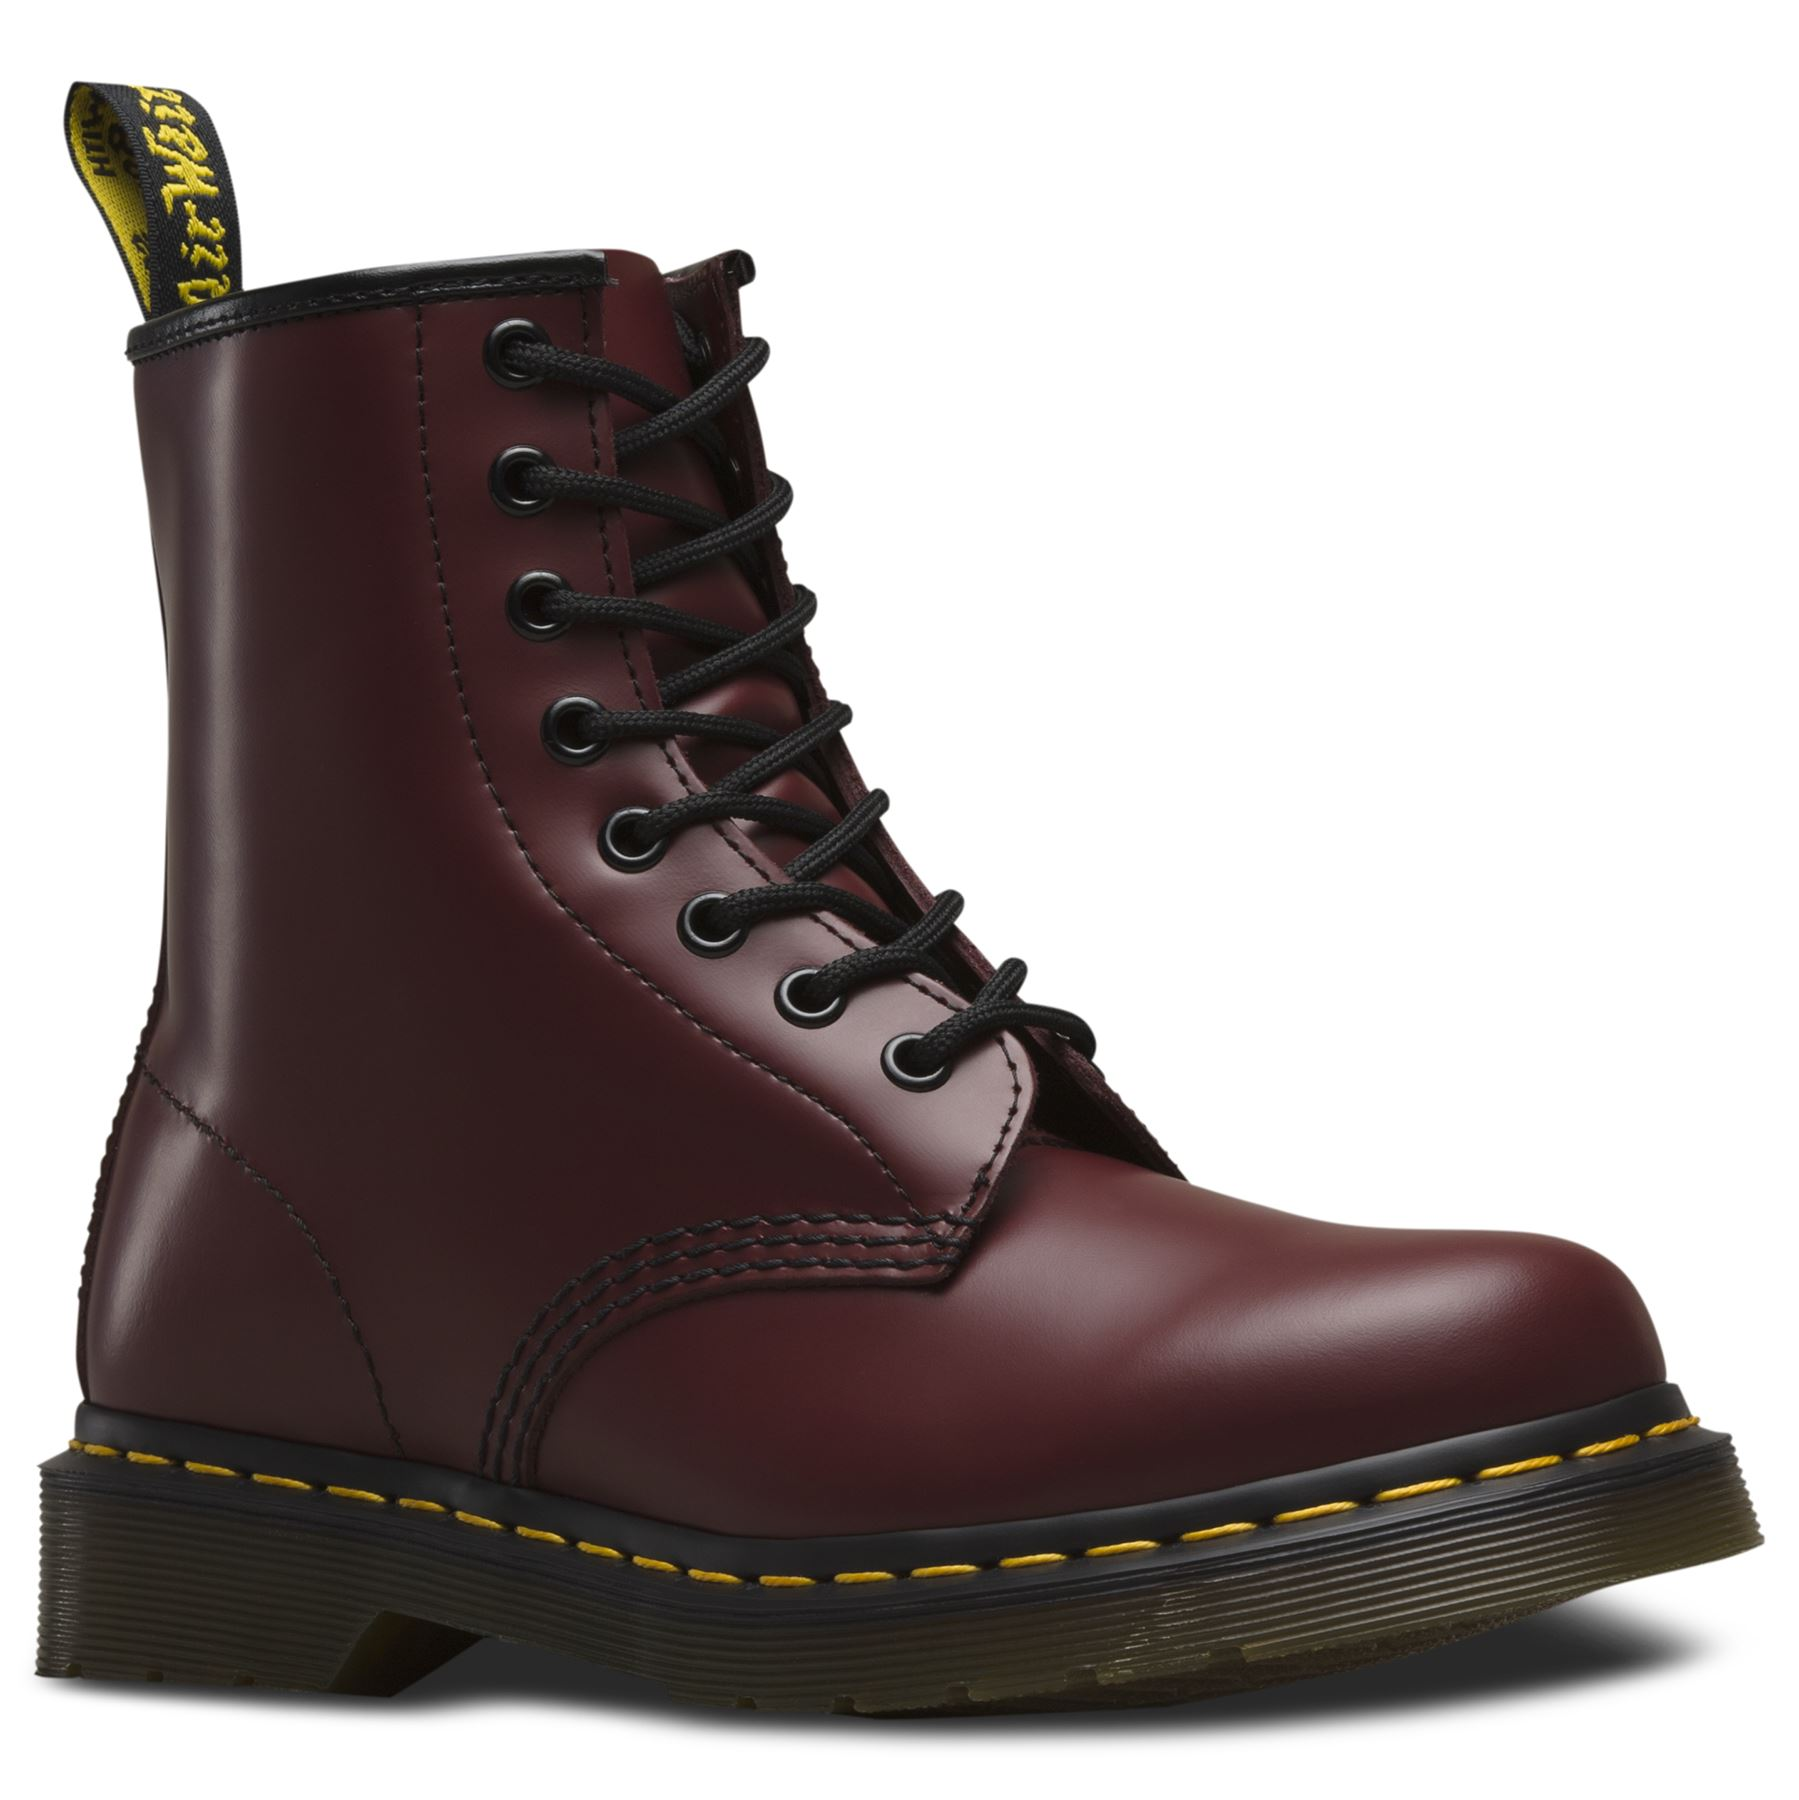 dr martens unisex 1460 cherry red classic smooth leather 8 eye ankle doc boots ebay. Black Bedroom Furniture Sets. Home Design Ideas